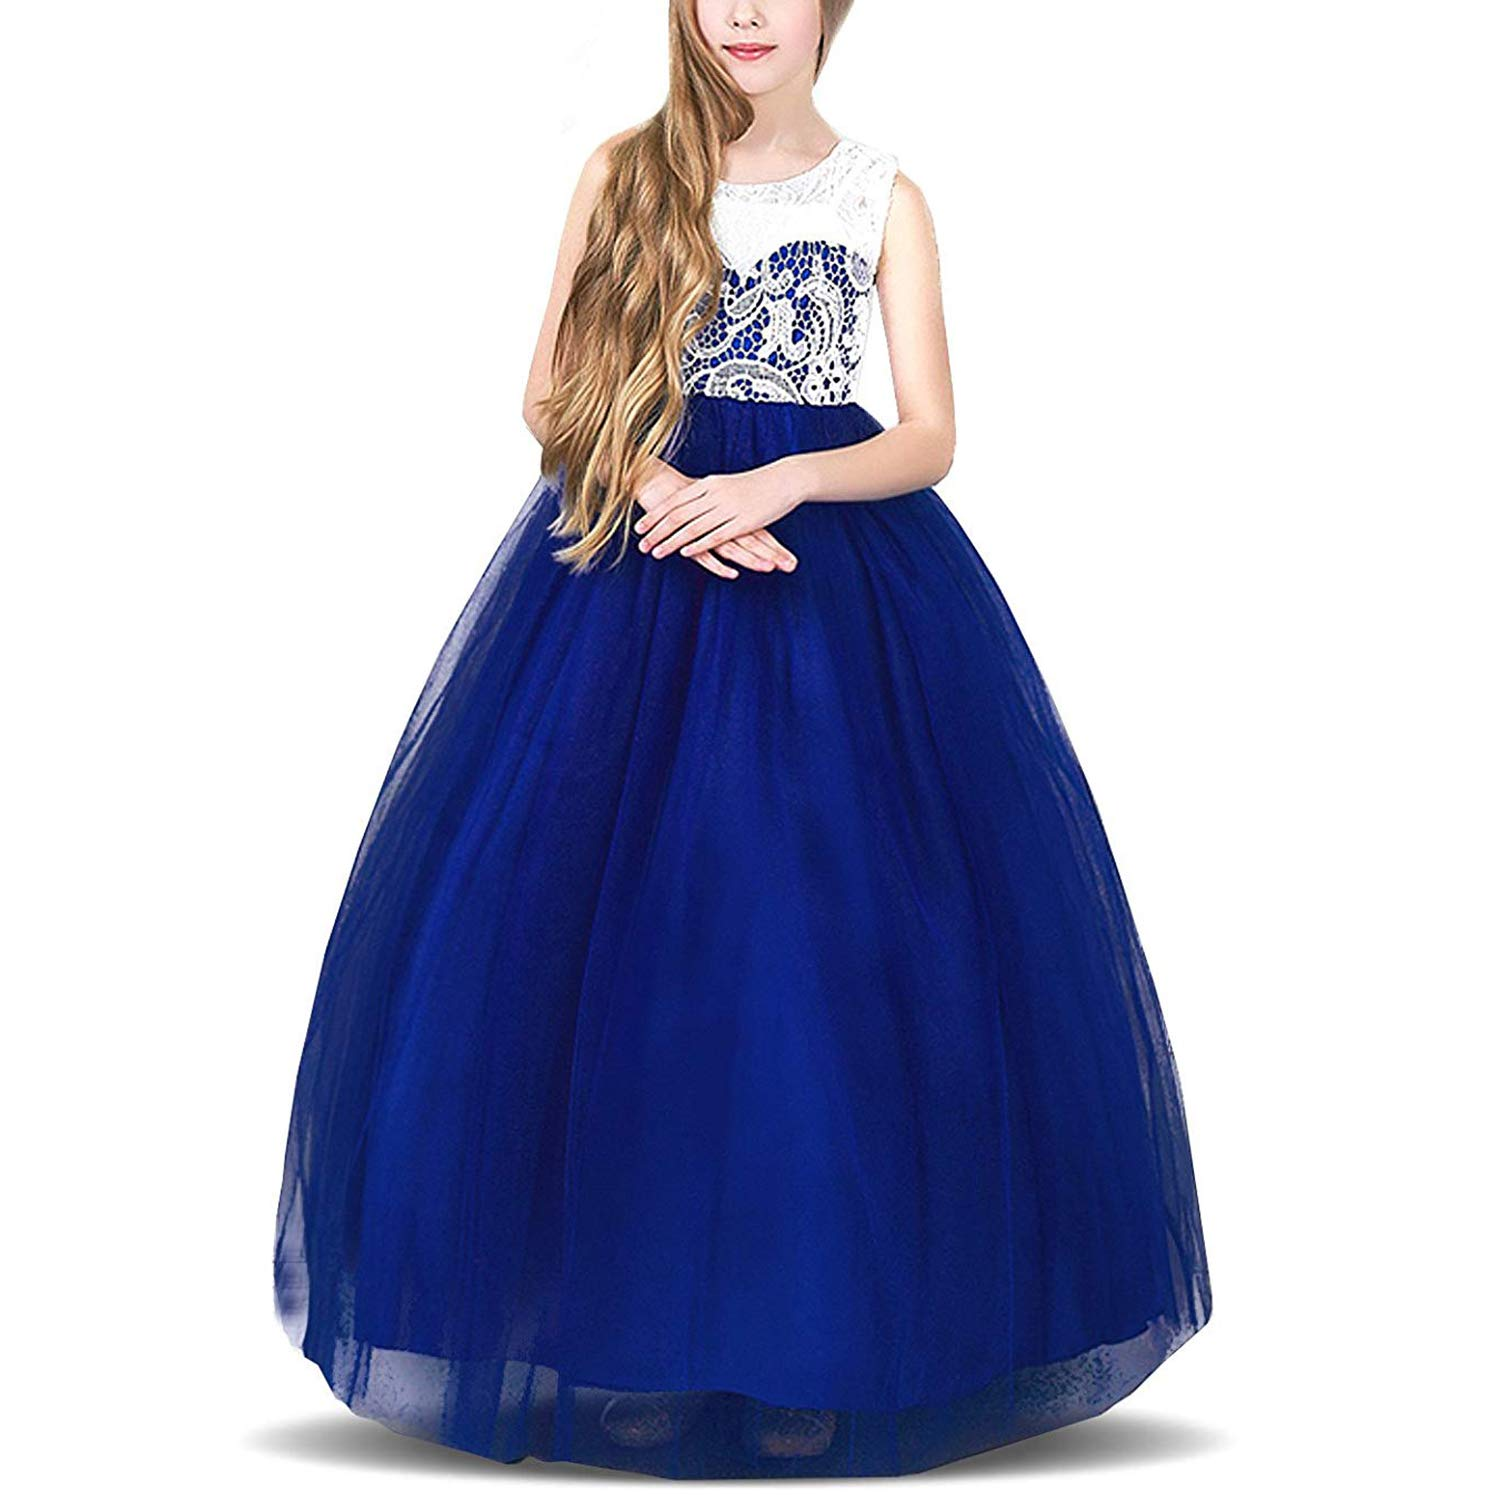 TTYAOVO Kids Prom Ball Gown Girl Lace Tulle Flower Princess Party Maxi Dress